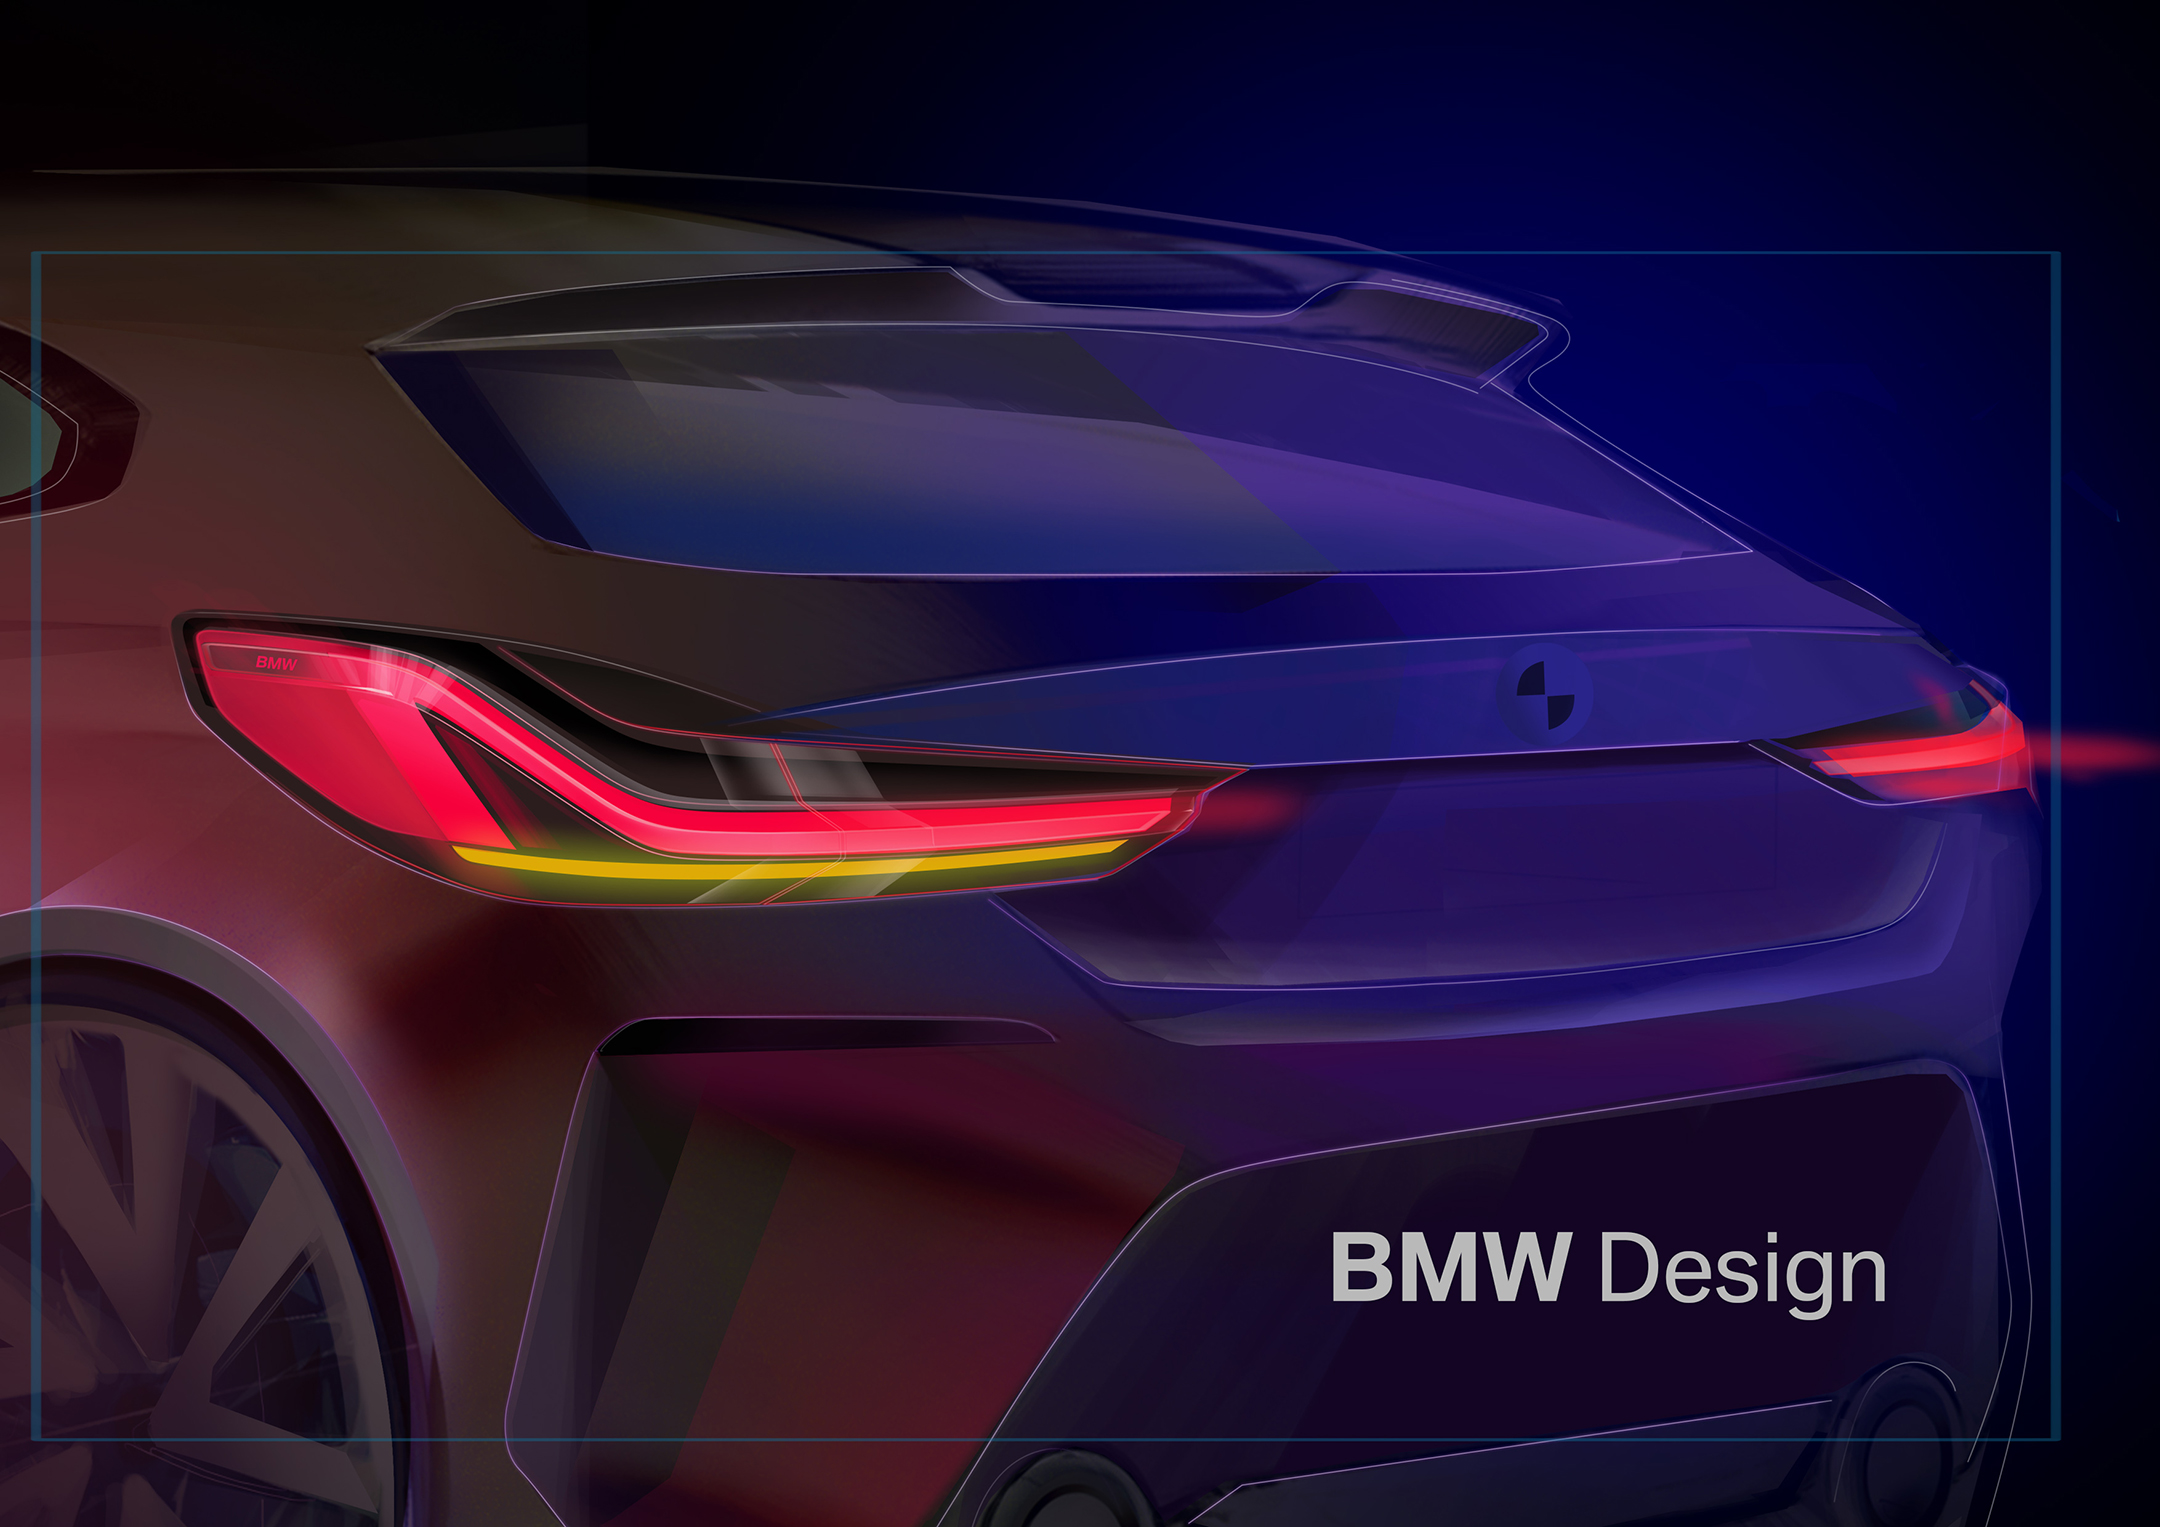 BMW 1 Series - 2019 - design sketch - rear light